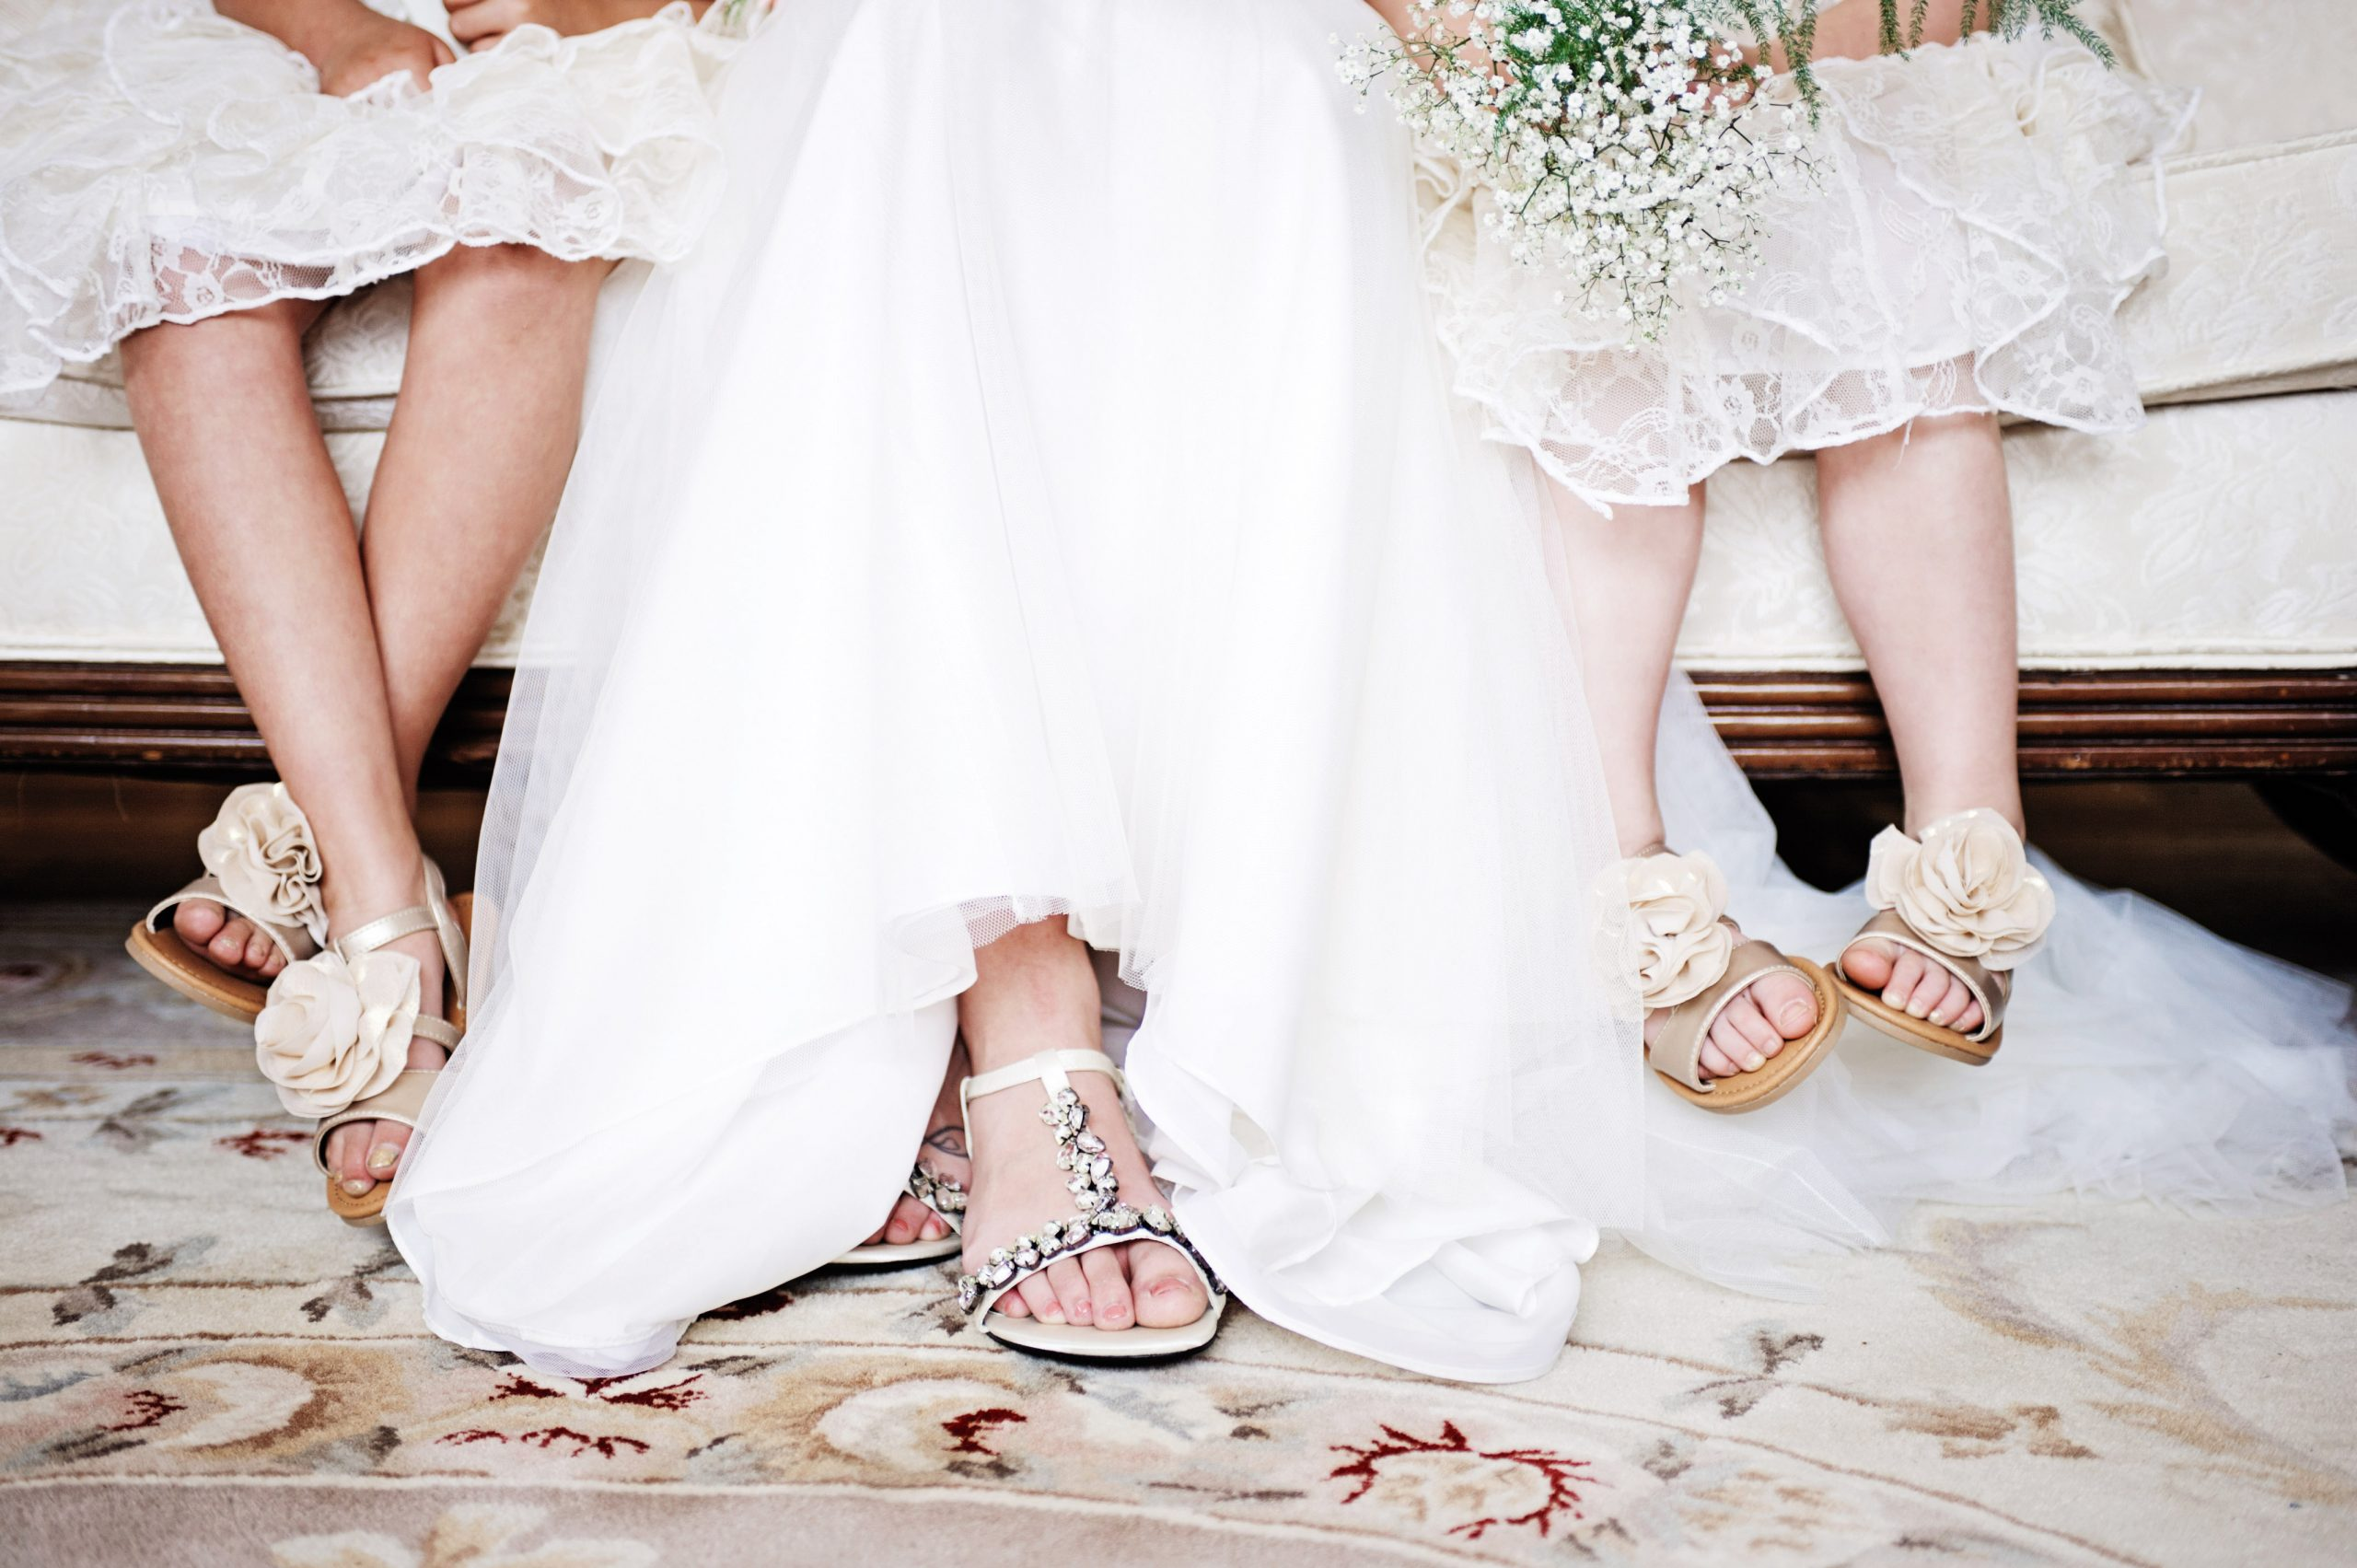 Fancy feet of the flower girls and bride to be at Lakeview Farms in York, PA, showcased by Lovefusion Photography. Featured in Dream Weddings.